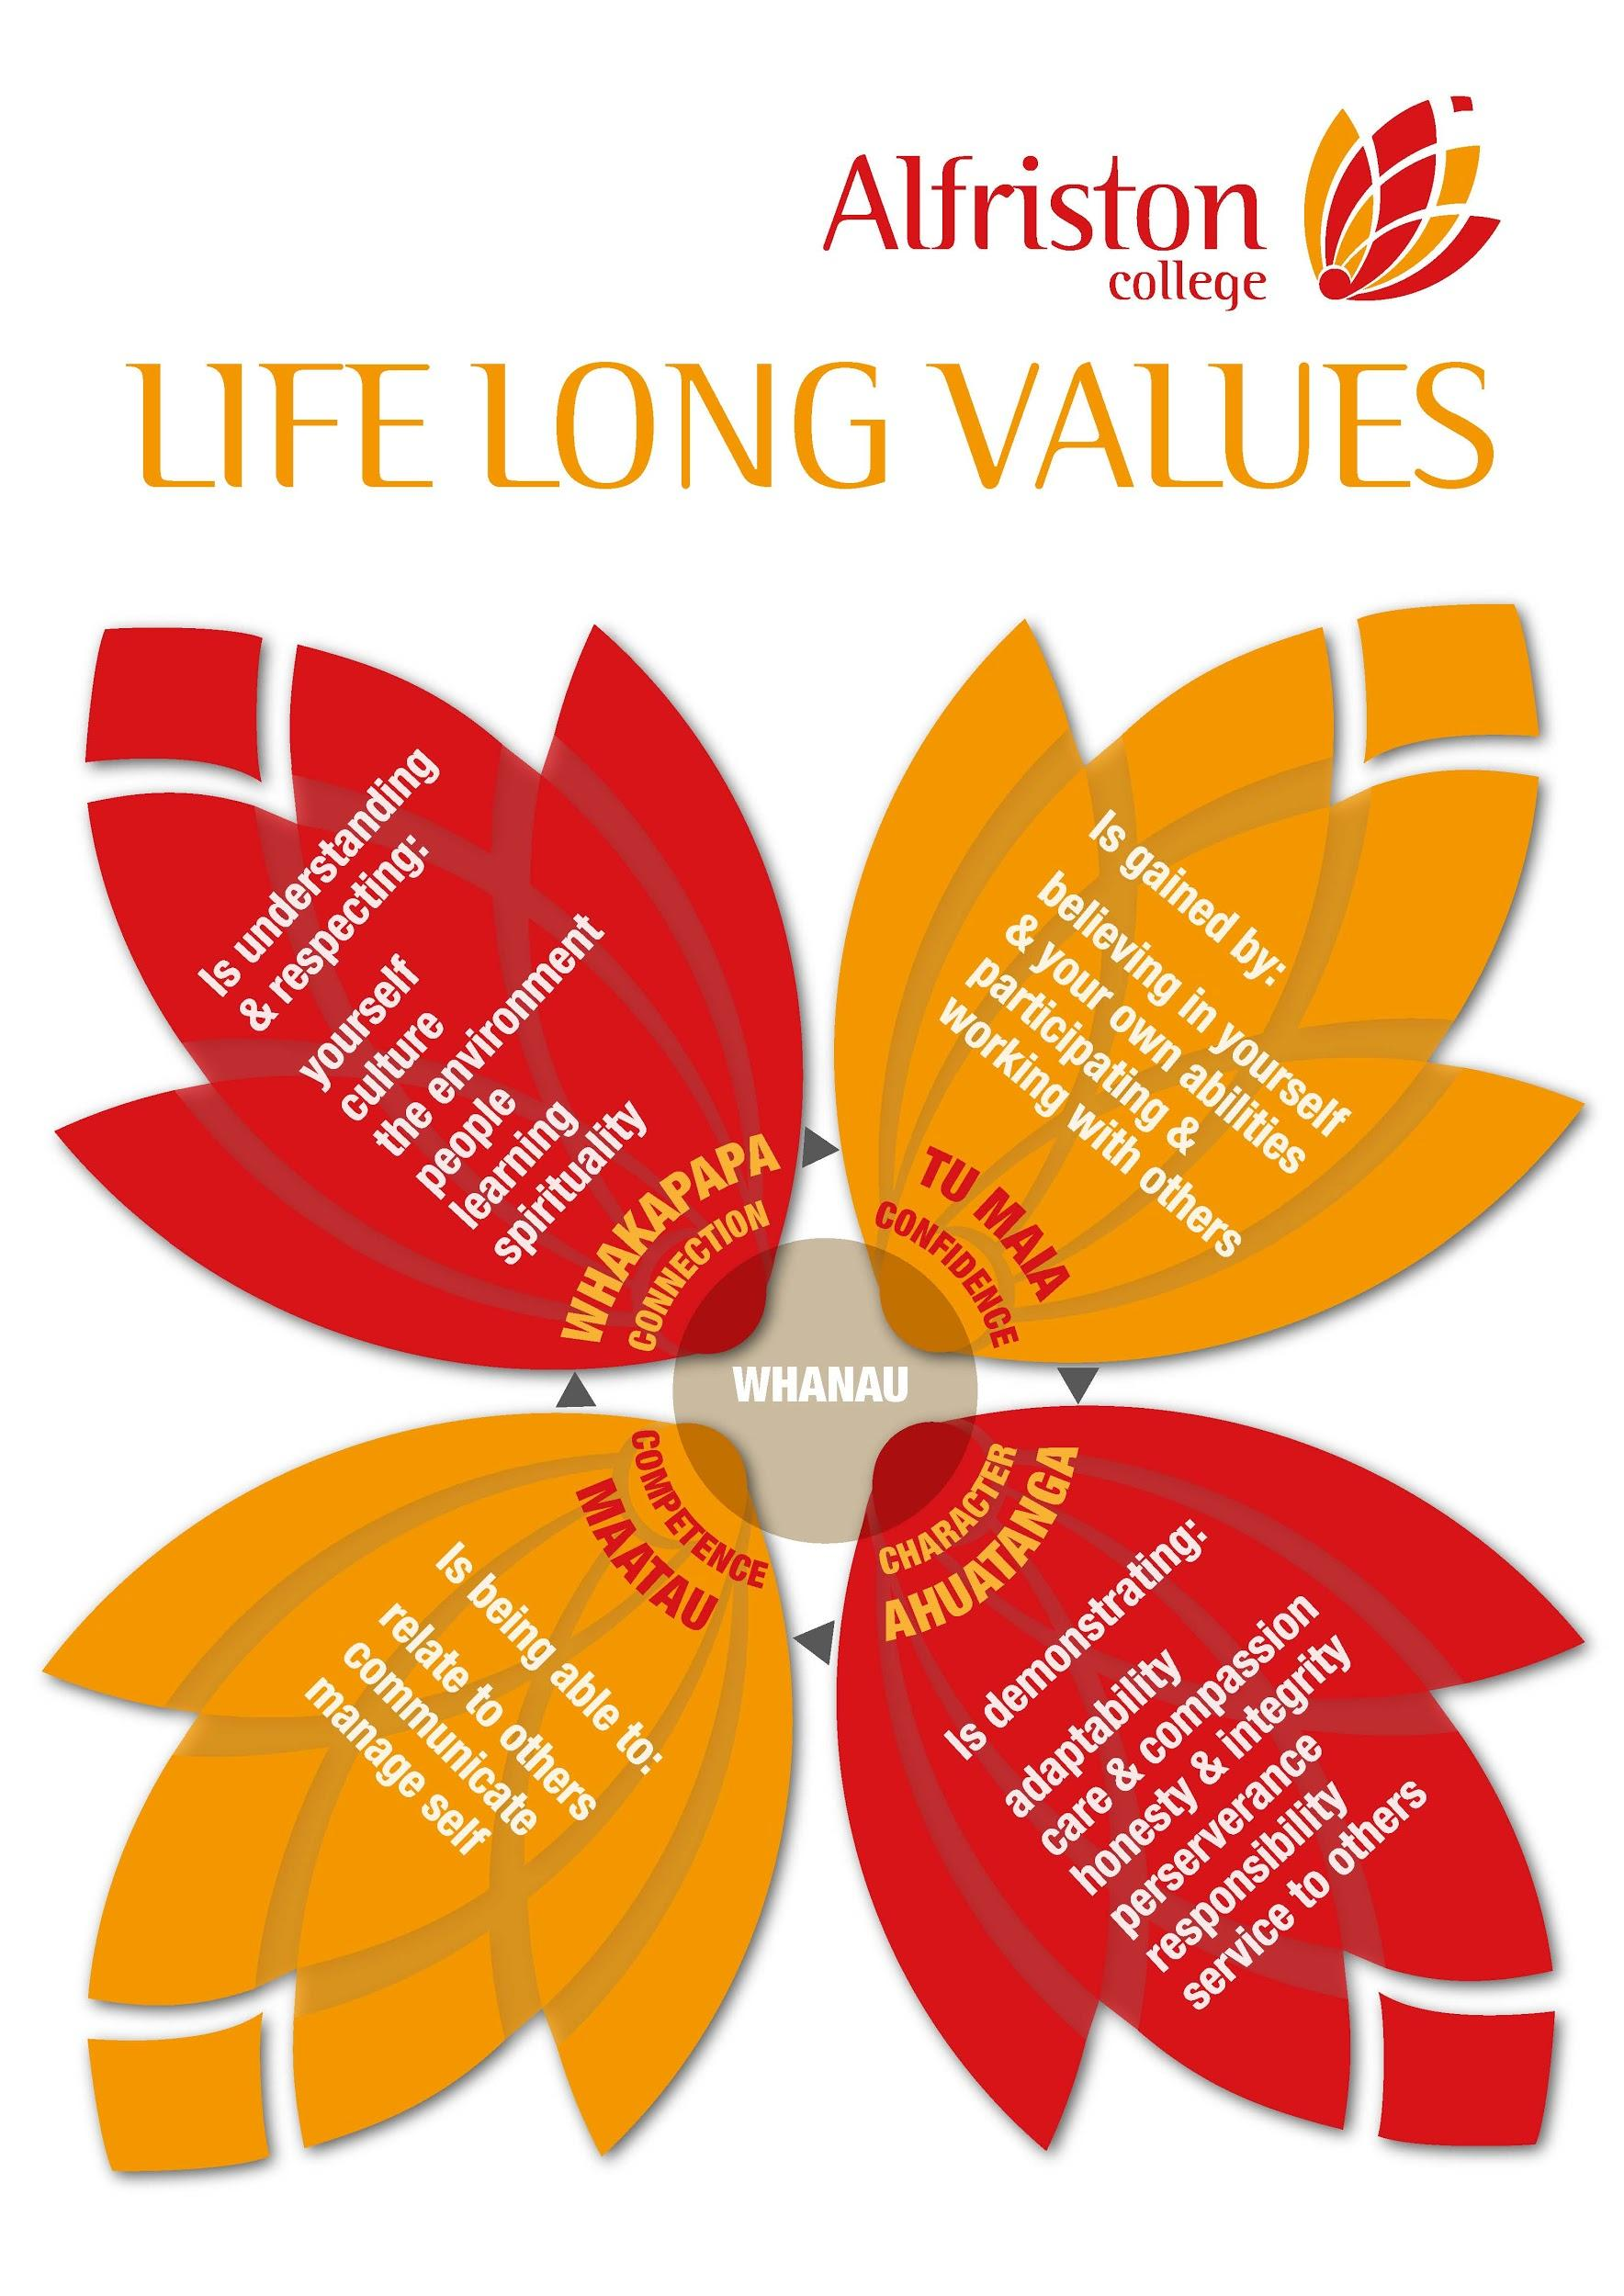 Life Long Values Diagram.jpg